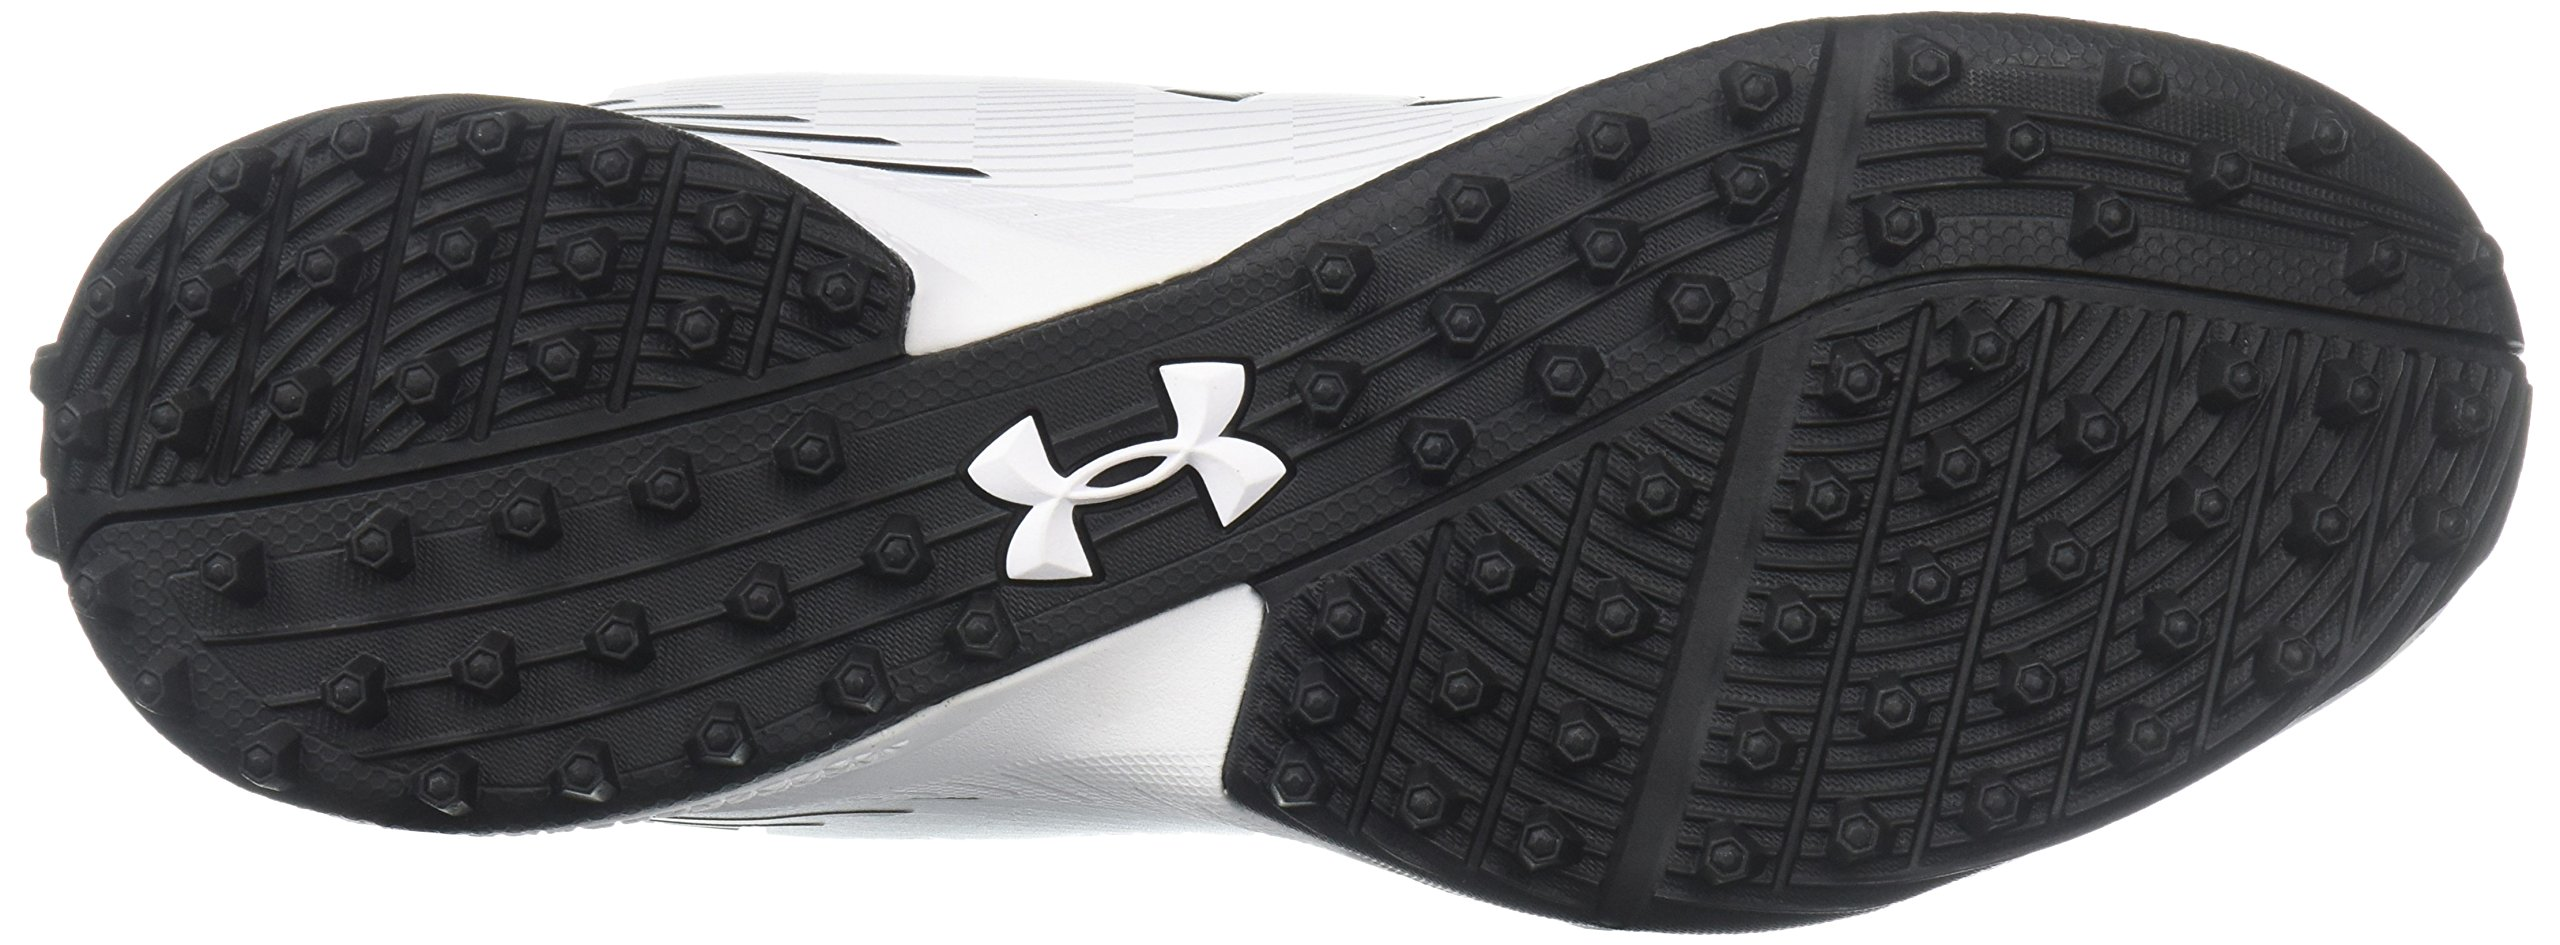 98f59c564a4 Under Armour Women s Lax Finisher Turf Lacrosse Shoe